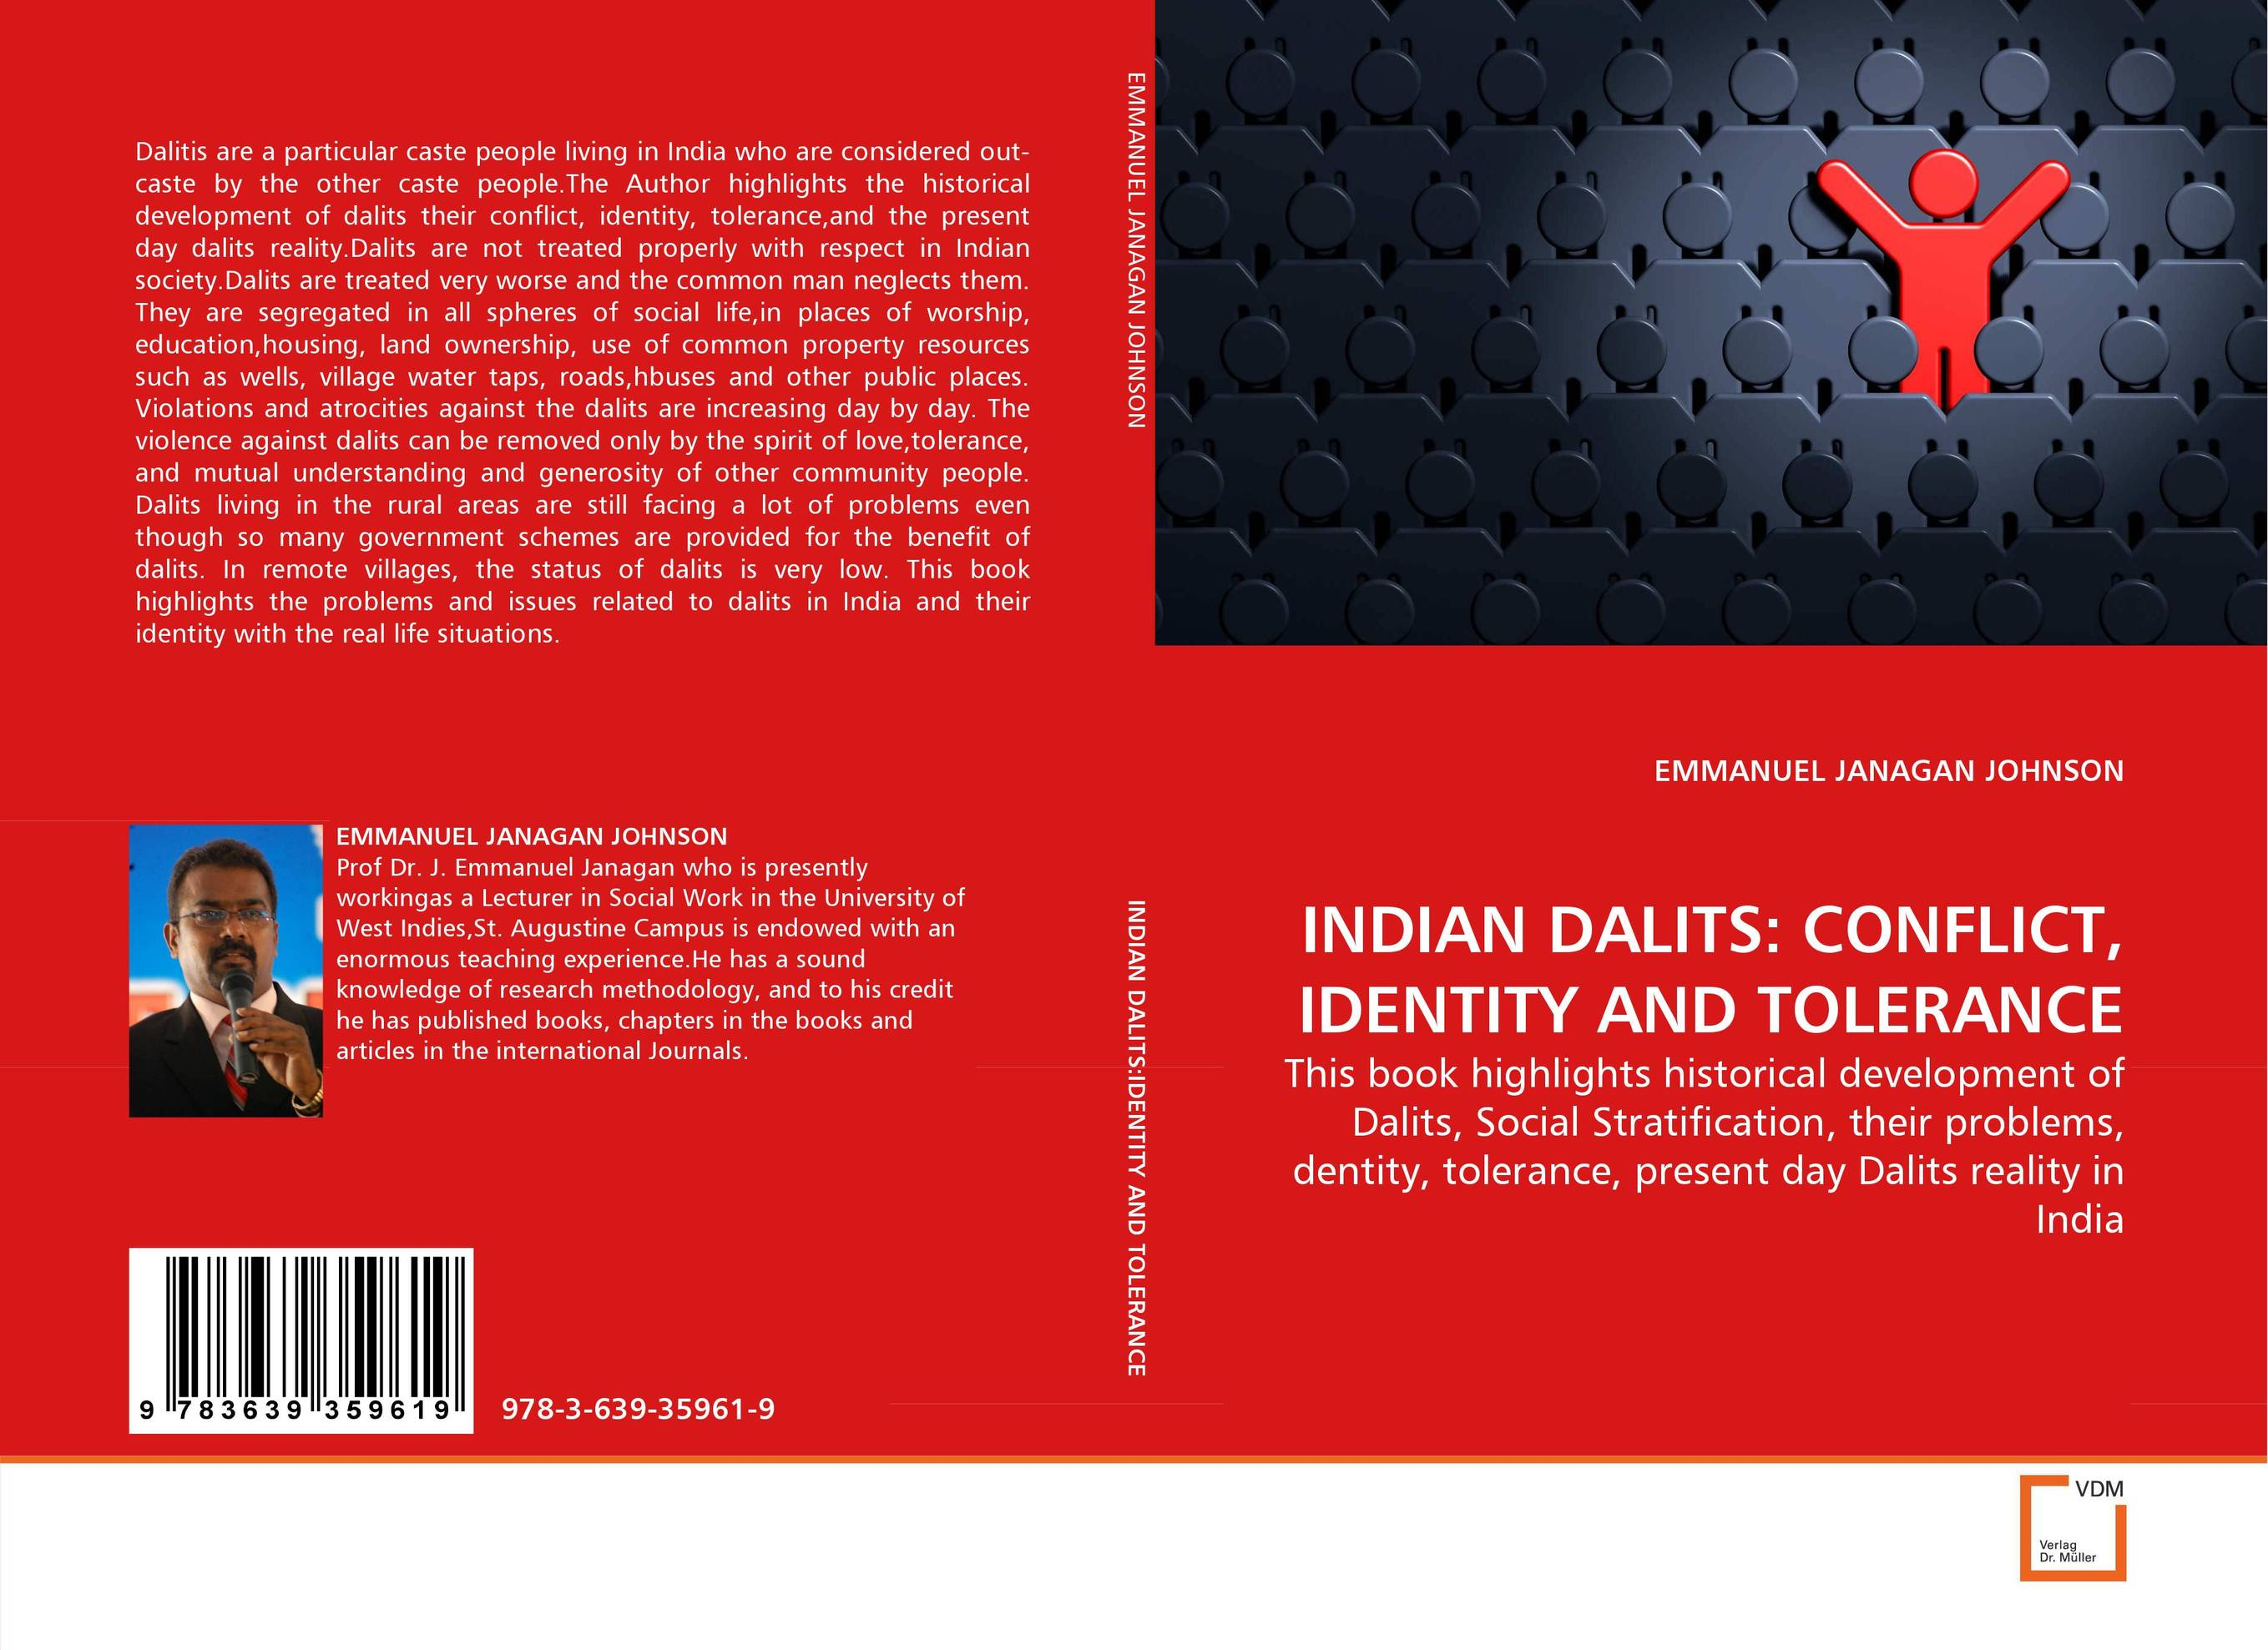 INDIAN DALITS: CONFLICT, IDENTITY AND TOLERANCE tolerance intolerance identity